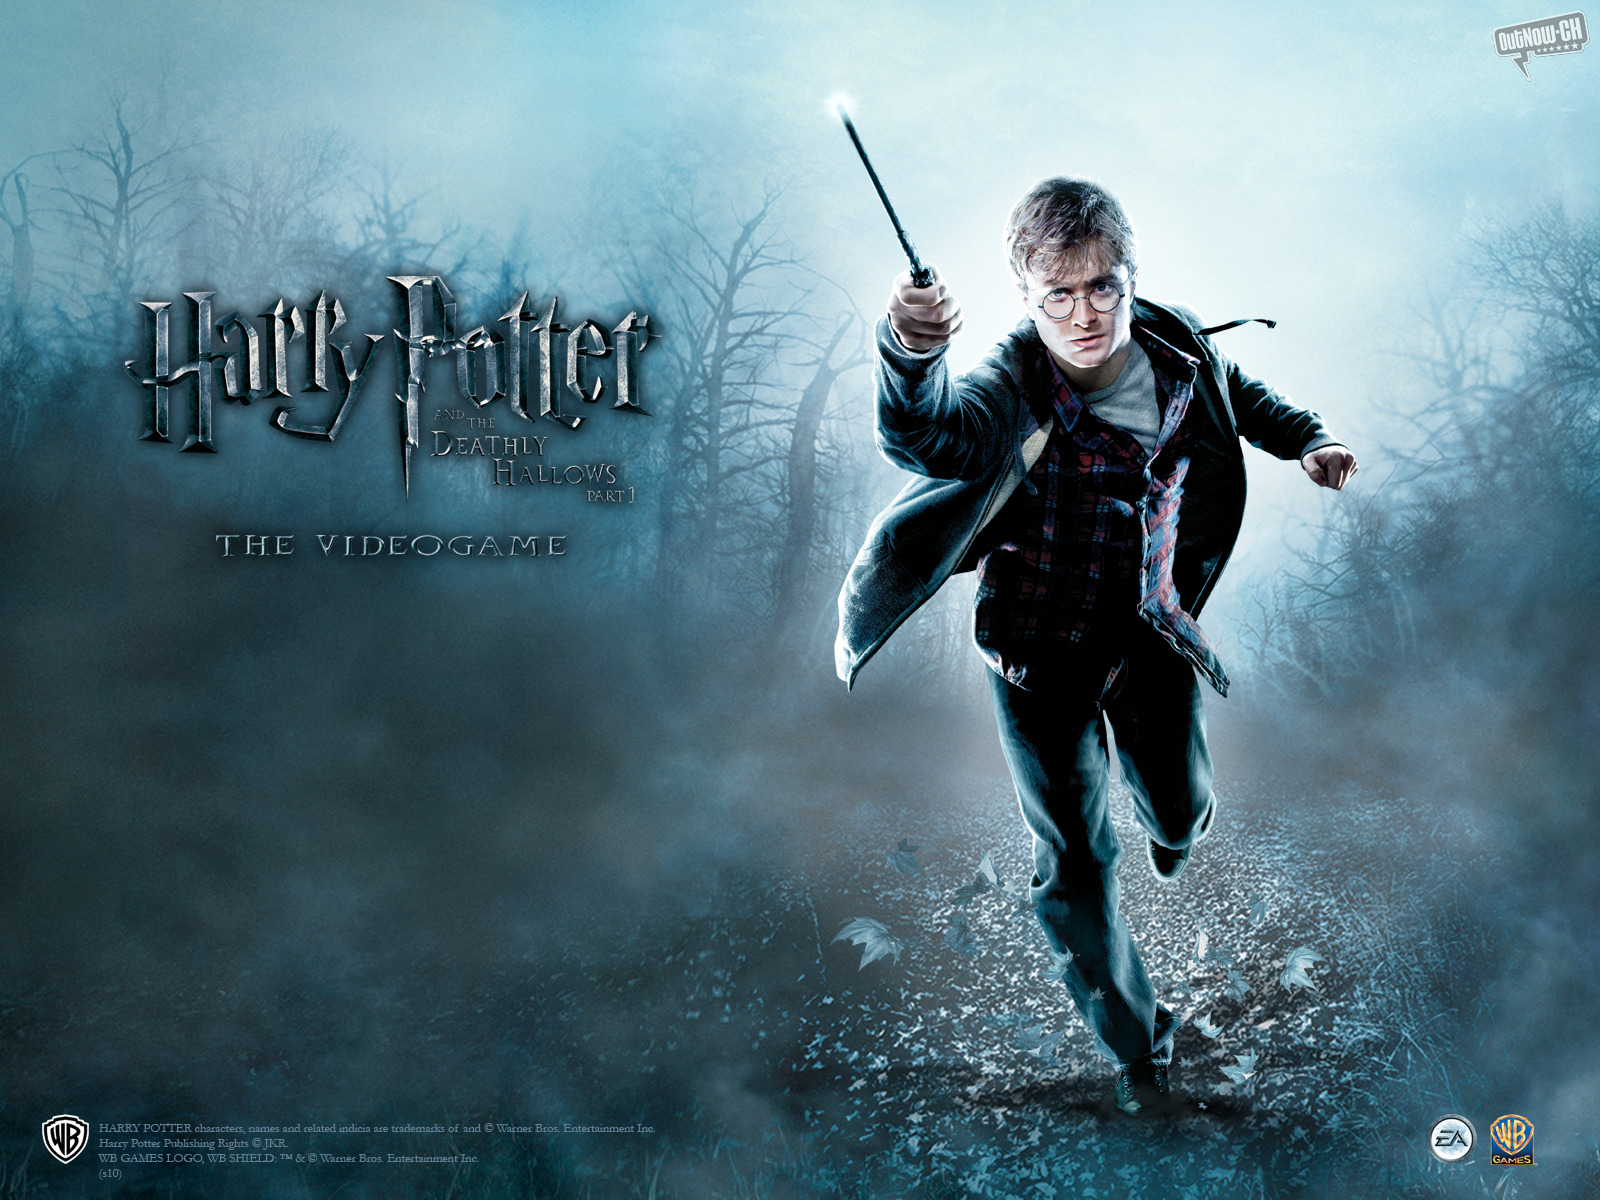 Good Wallpaper Harry Potter Twitter - harry-potter%3A-deathly-hallows_wallpapers_26321_1600x1200  Perfect Image Reference_707155.jpg